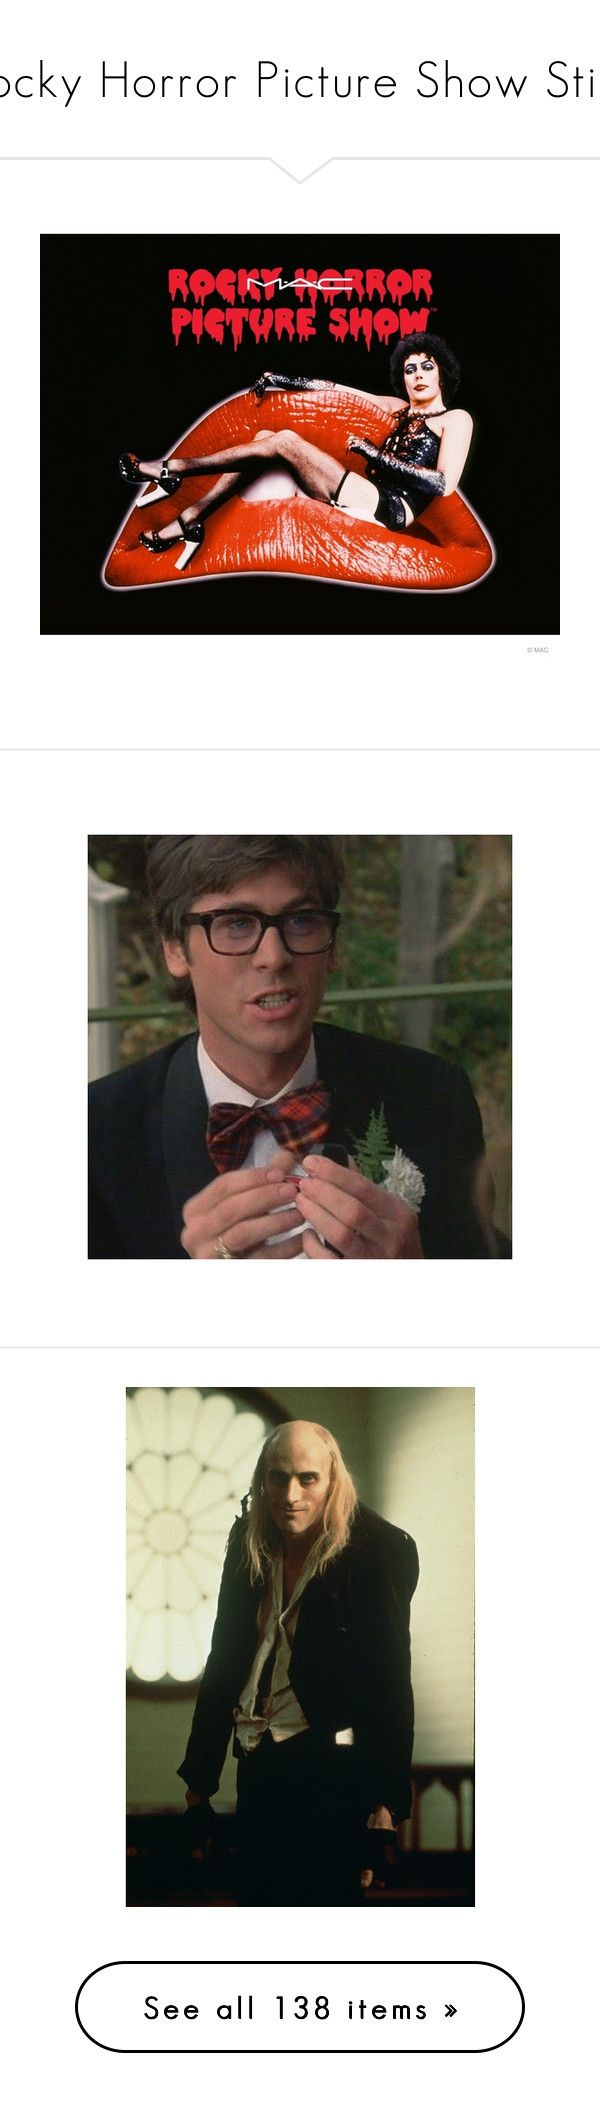 """""""Rocky Horror Picture Show Stills"""" by blood-red-queen ❤ liked on Polyvore featuring men's fashion, costumes, rocky horror costumes, rocky horror picture show costumes, rocky horror halloween costumes, rocky horror picture show halloween costumes, home, kitchen & dining, rocky horror and people"""